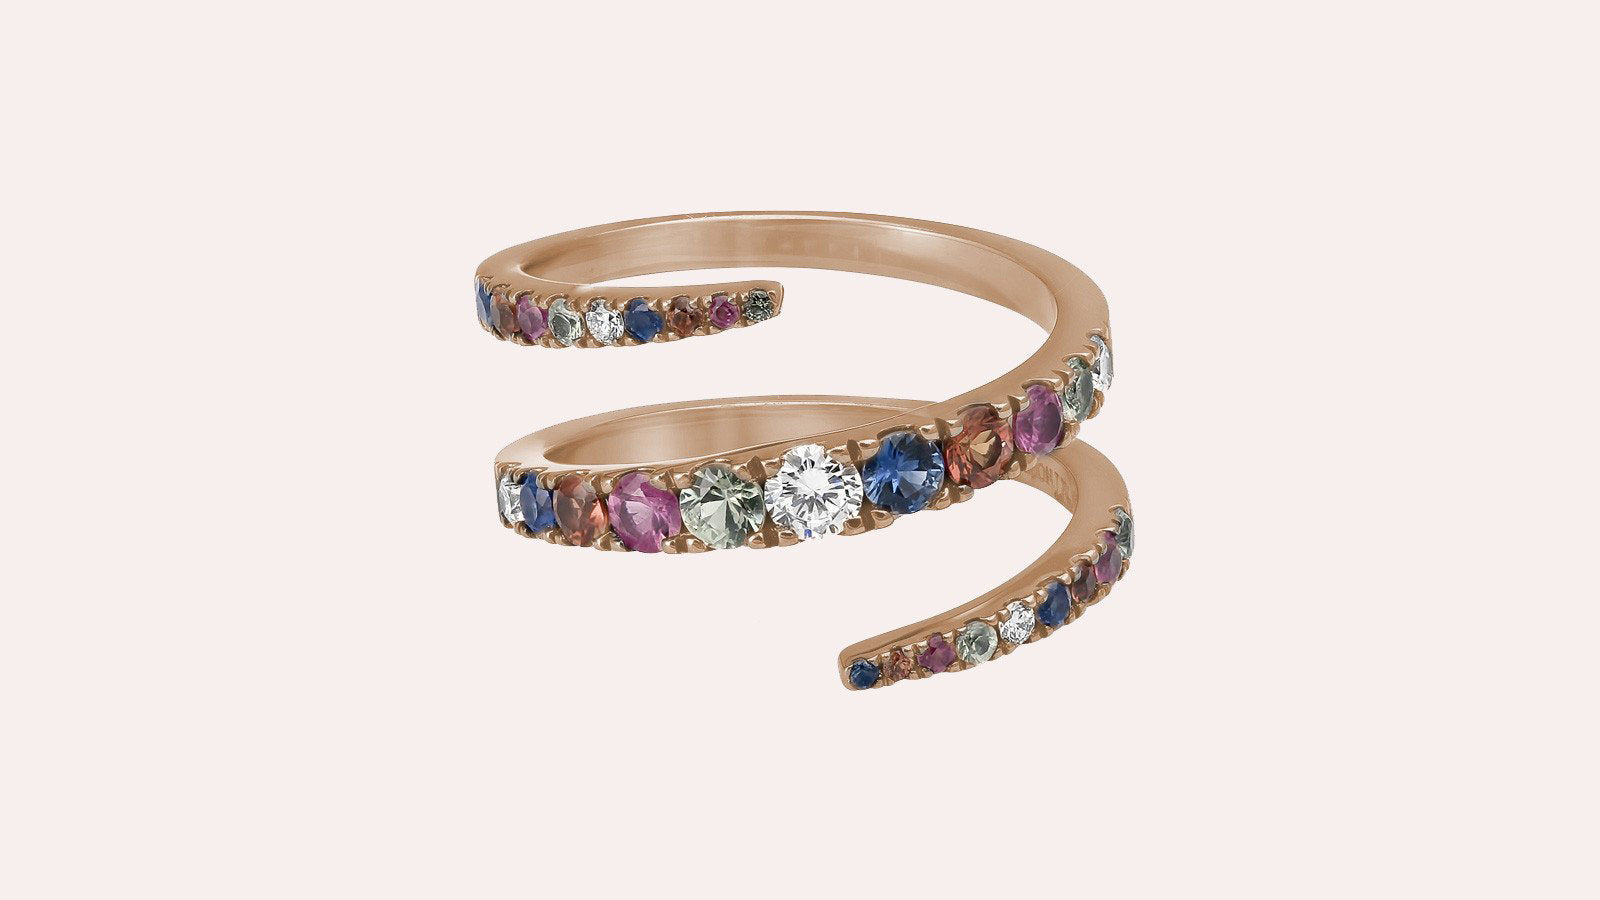 The Multi-Color Sapphire Graduate Ring